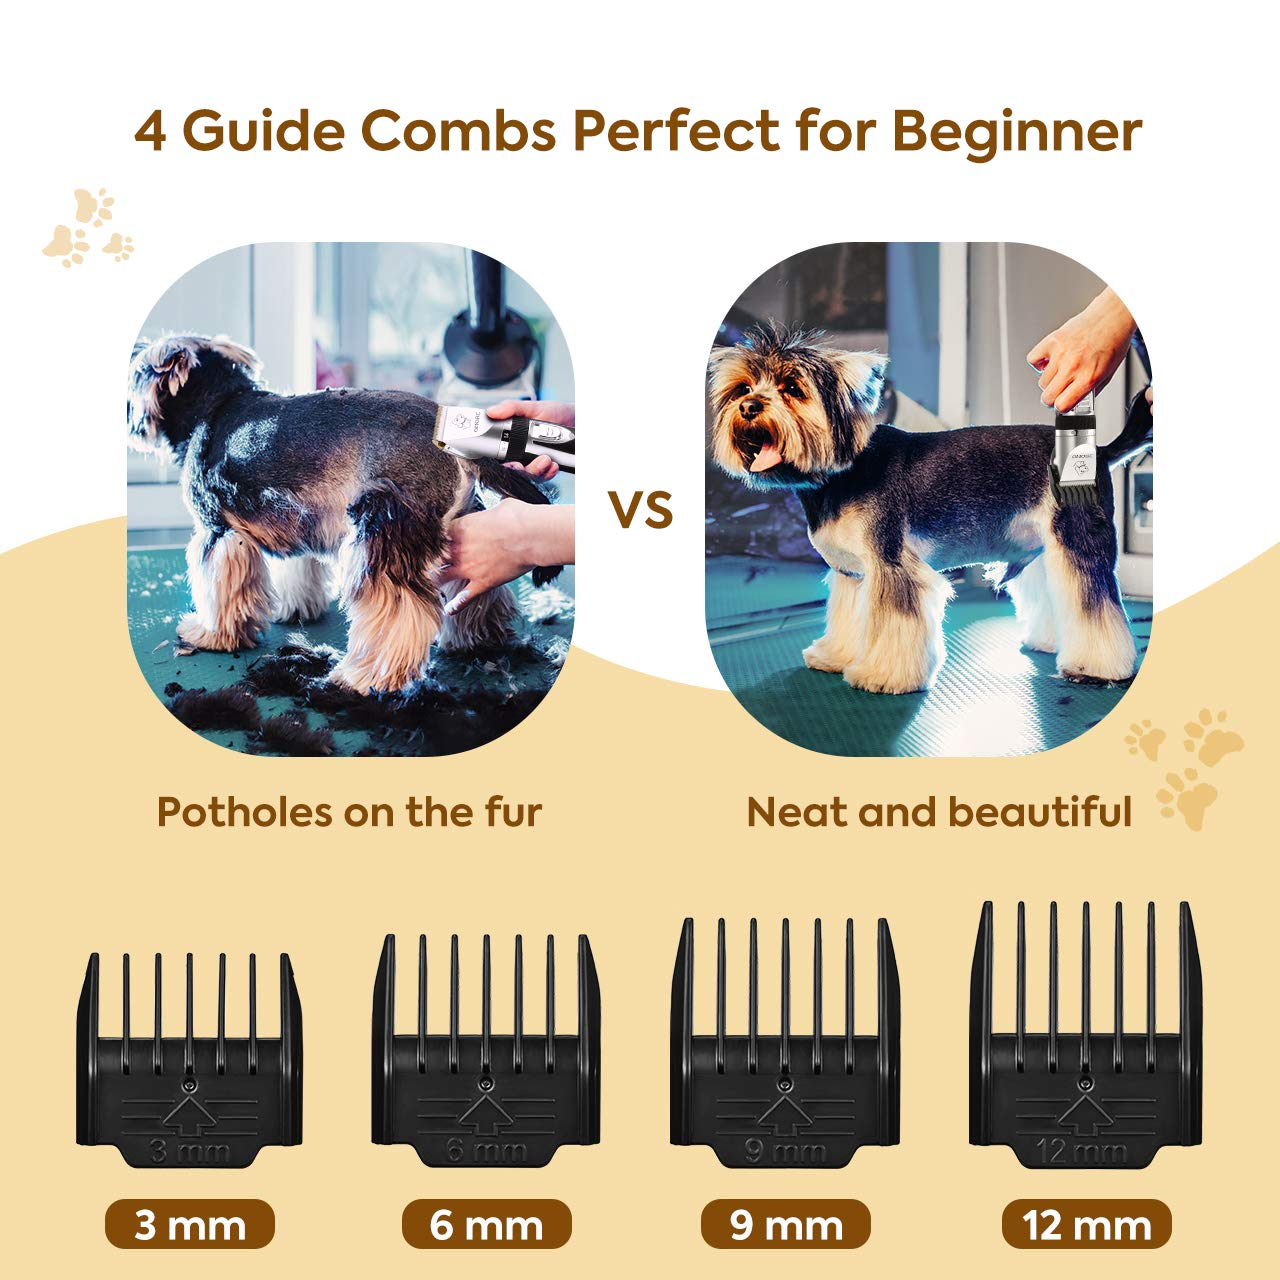 OMORC Dog Clippers Cordless Adjustable Pet Clippers Dog Hair Trimmer Rechargeable Cat Shaver Pet Grooming Professional Low Noise Dog Grooming kit with 8 Kinds Tools by OMORC (Image #9)